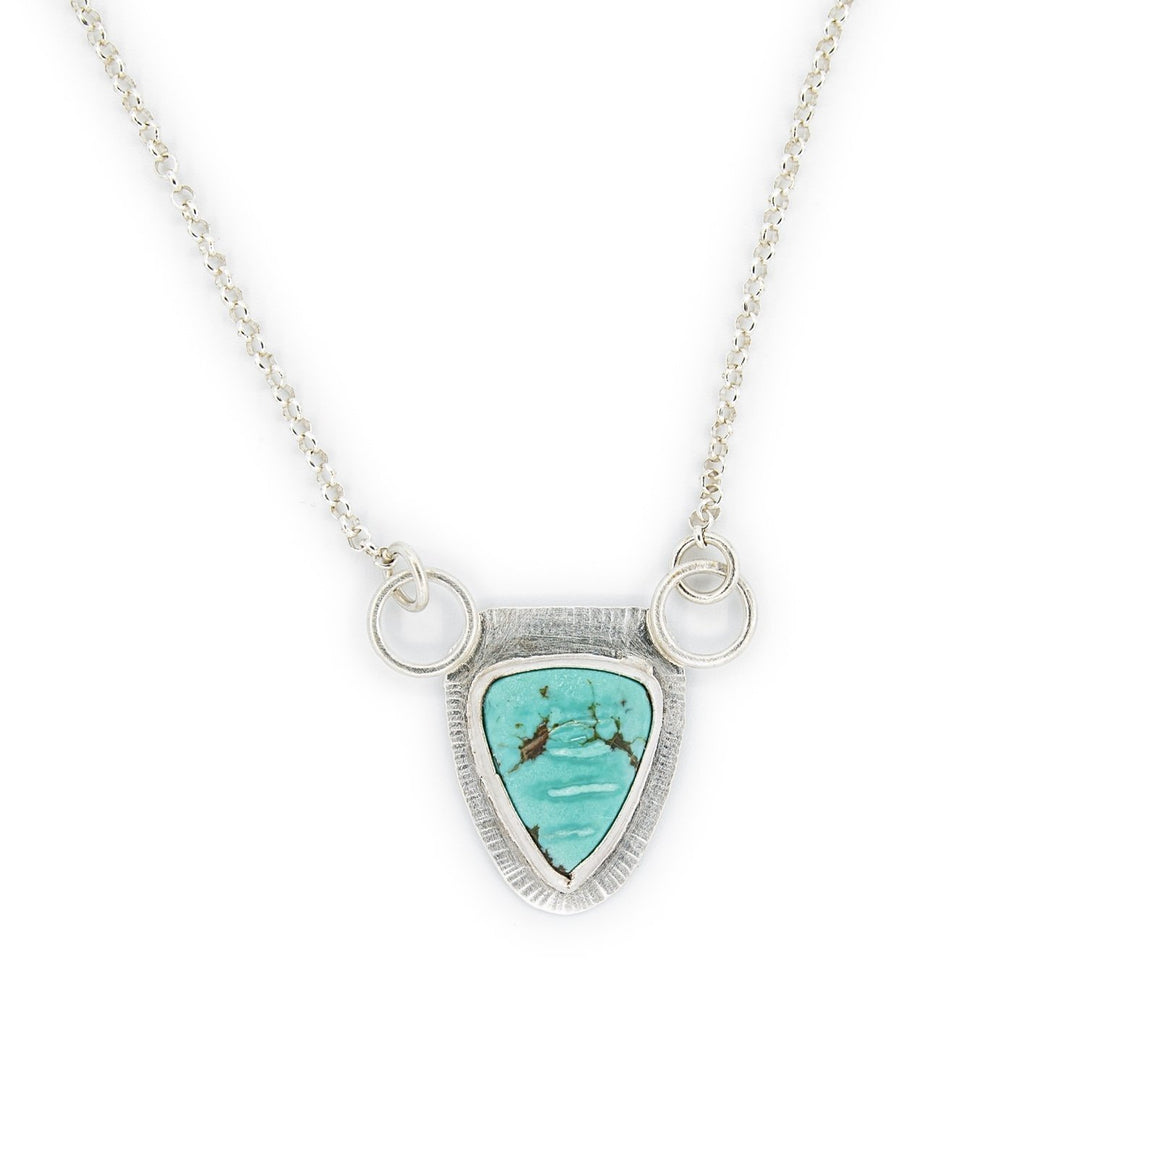 Celina - Balance - Pilot Mountain Turquoise Necklace - Original Sin Jewelry